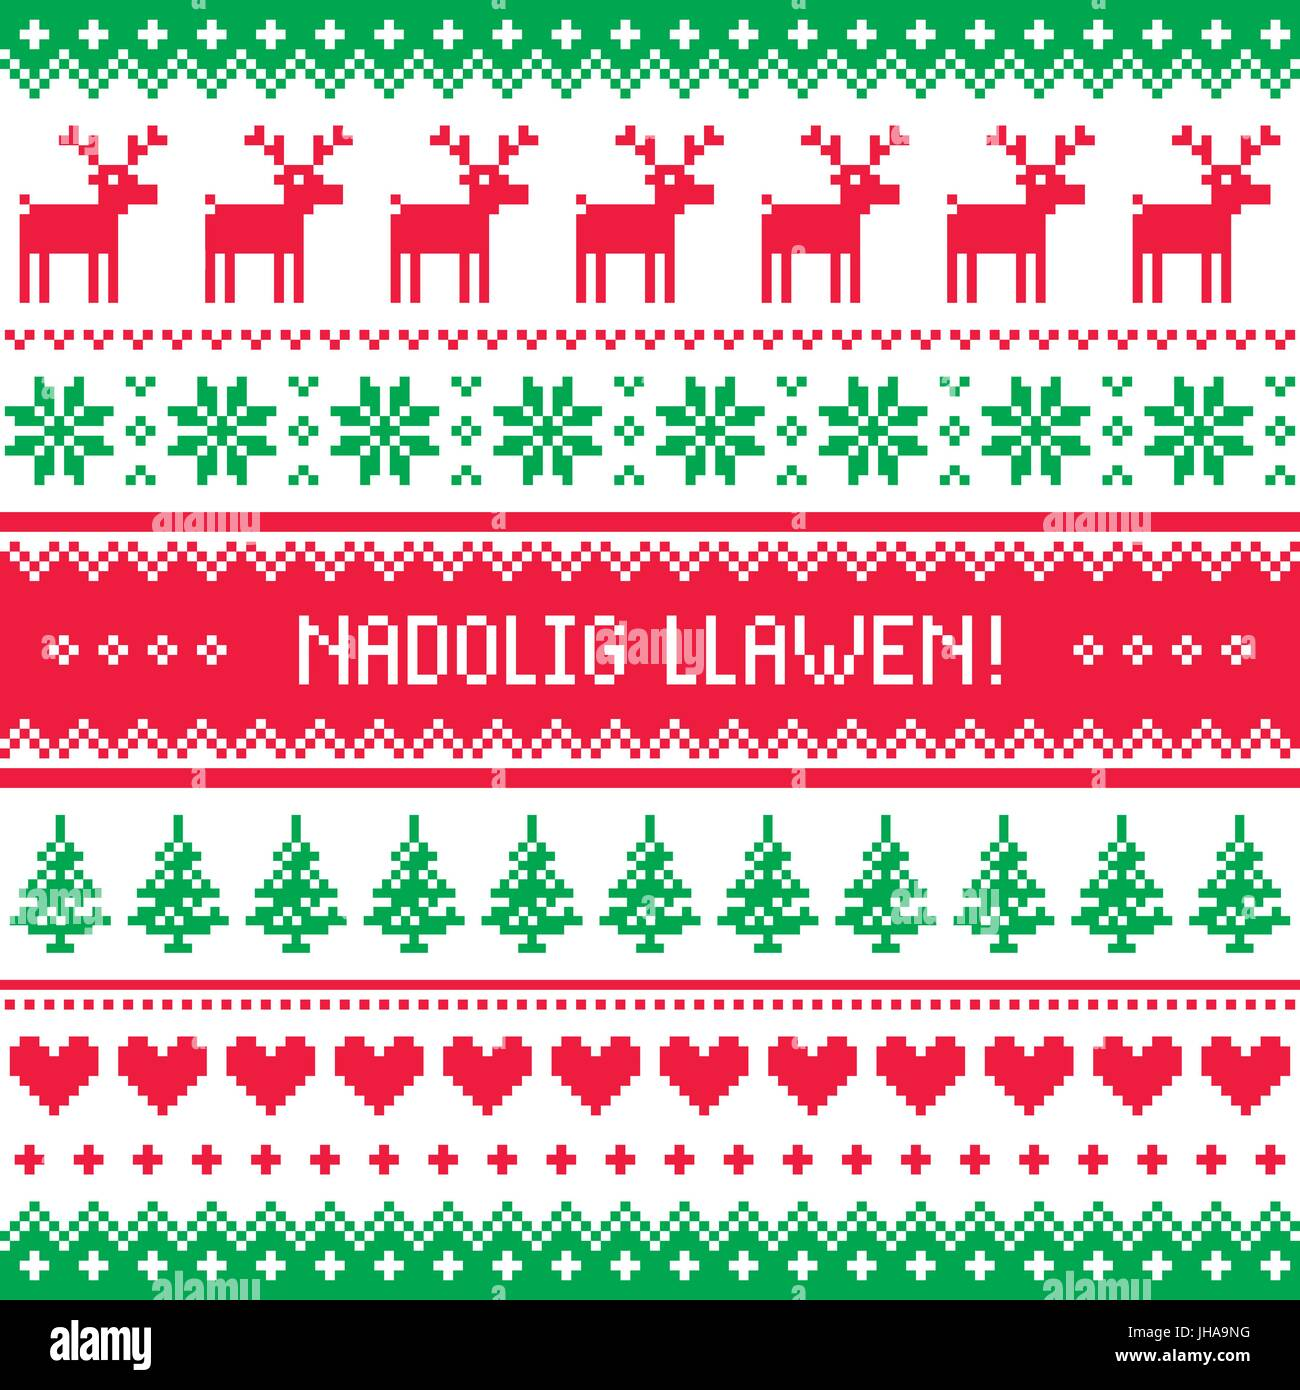 Nadolig llawen merry christmas in welsh greetings card seamless nadolig llawen merry christmas in welsh greetings card seamless pattern kristyandbryce Image collections